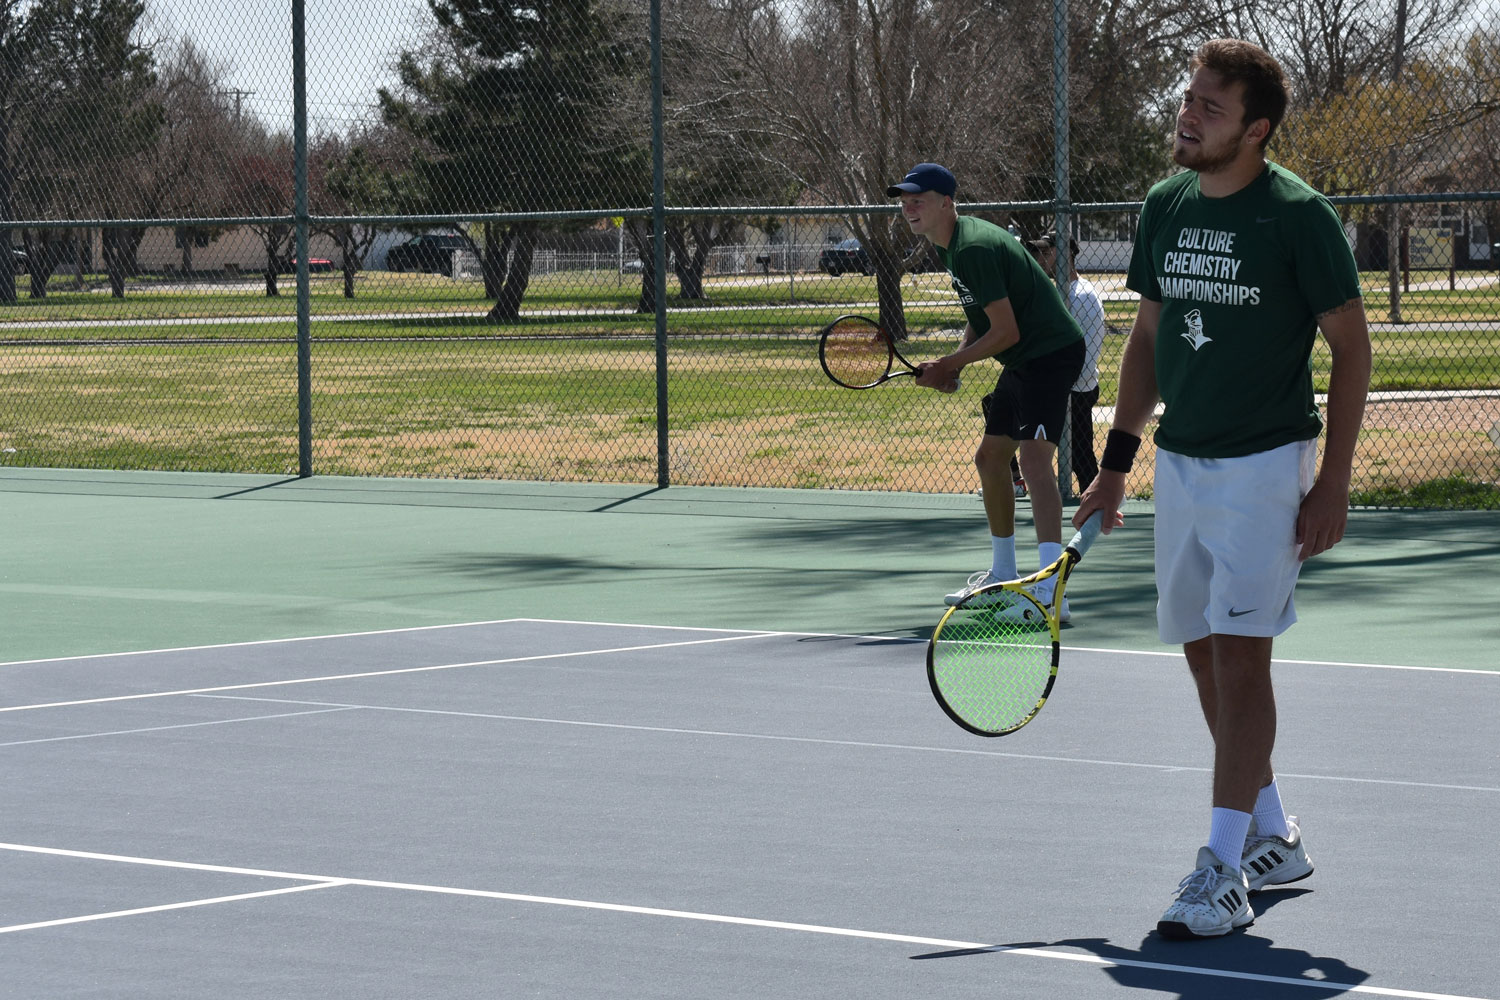 Nicolas Rousset, Plaisance, France sophomore, and Sander Jans, De Ronerberg, Netherlands, play in a doubles match against Cowley College on April 5. They are No. 1 in doubles for Seward.